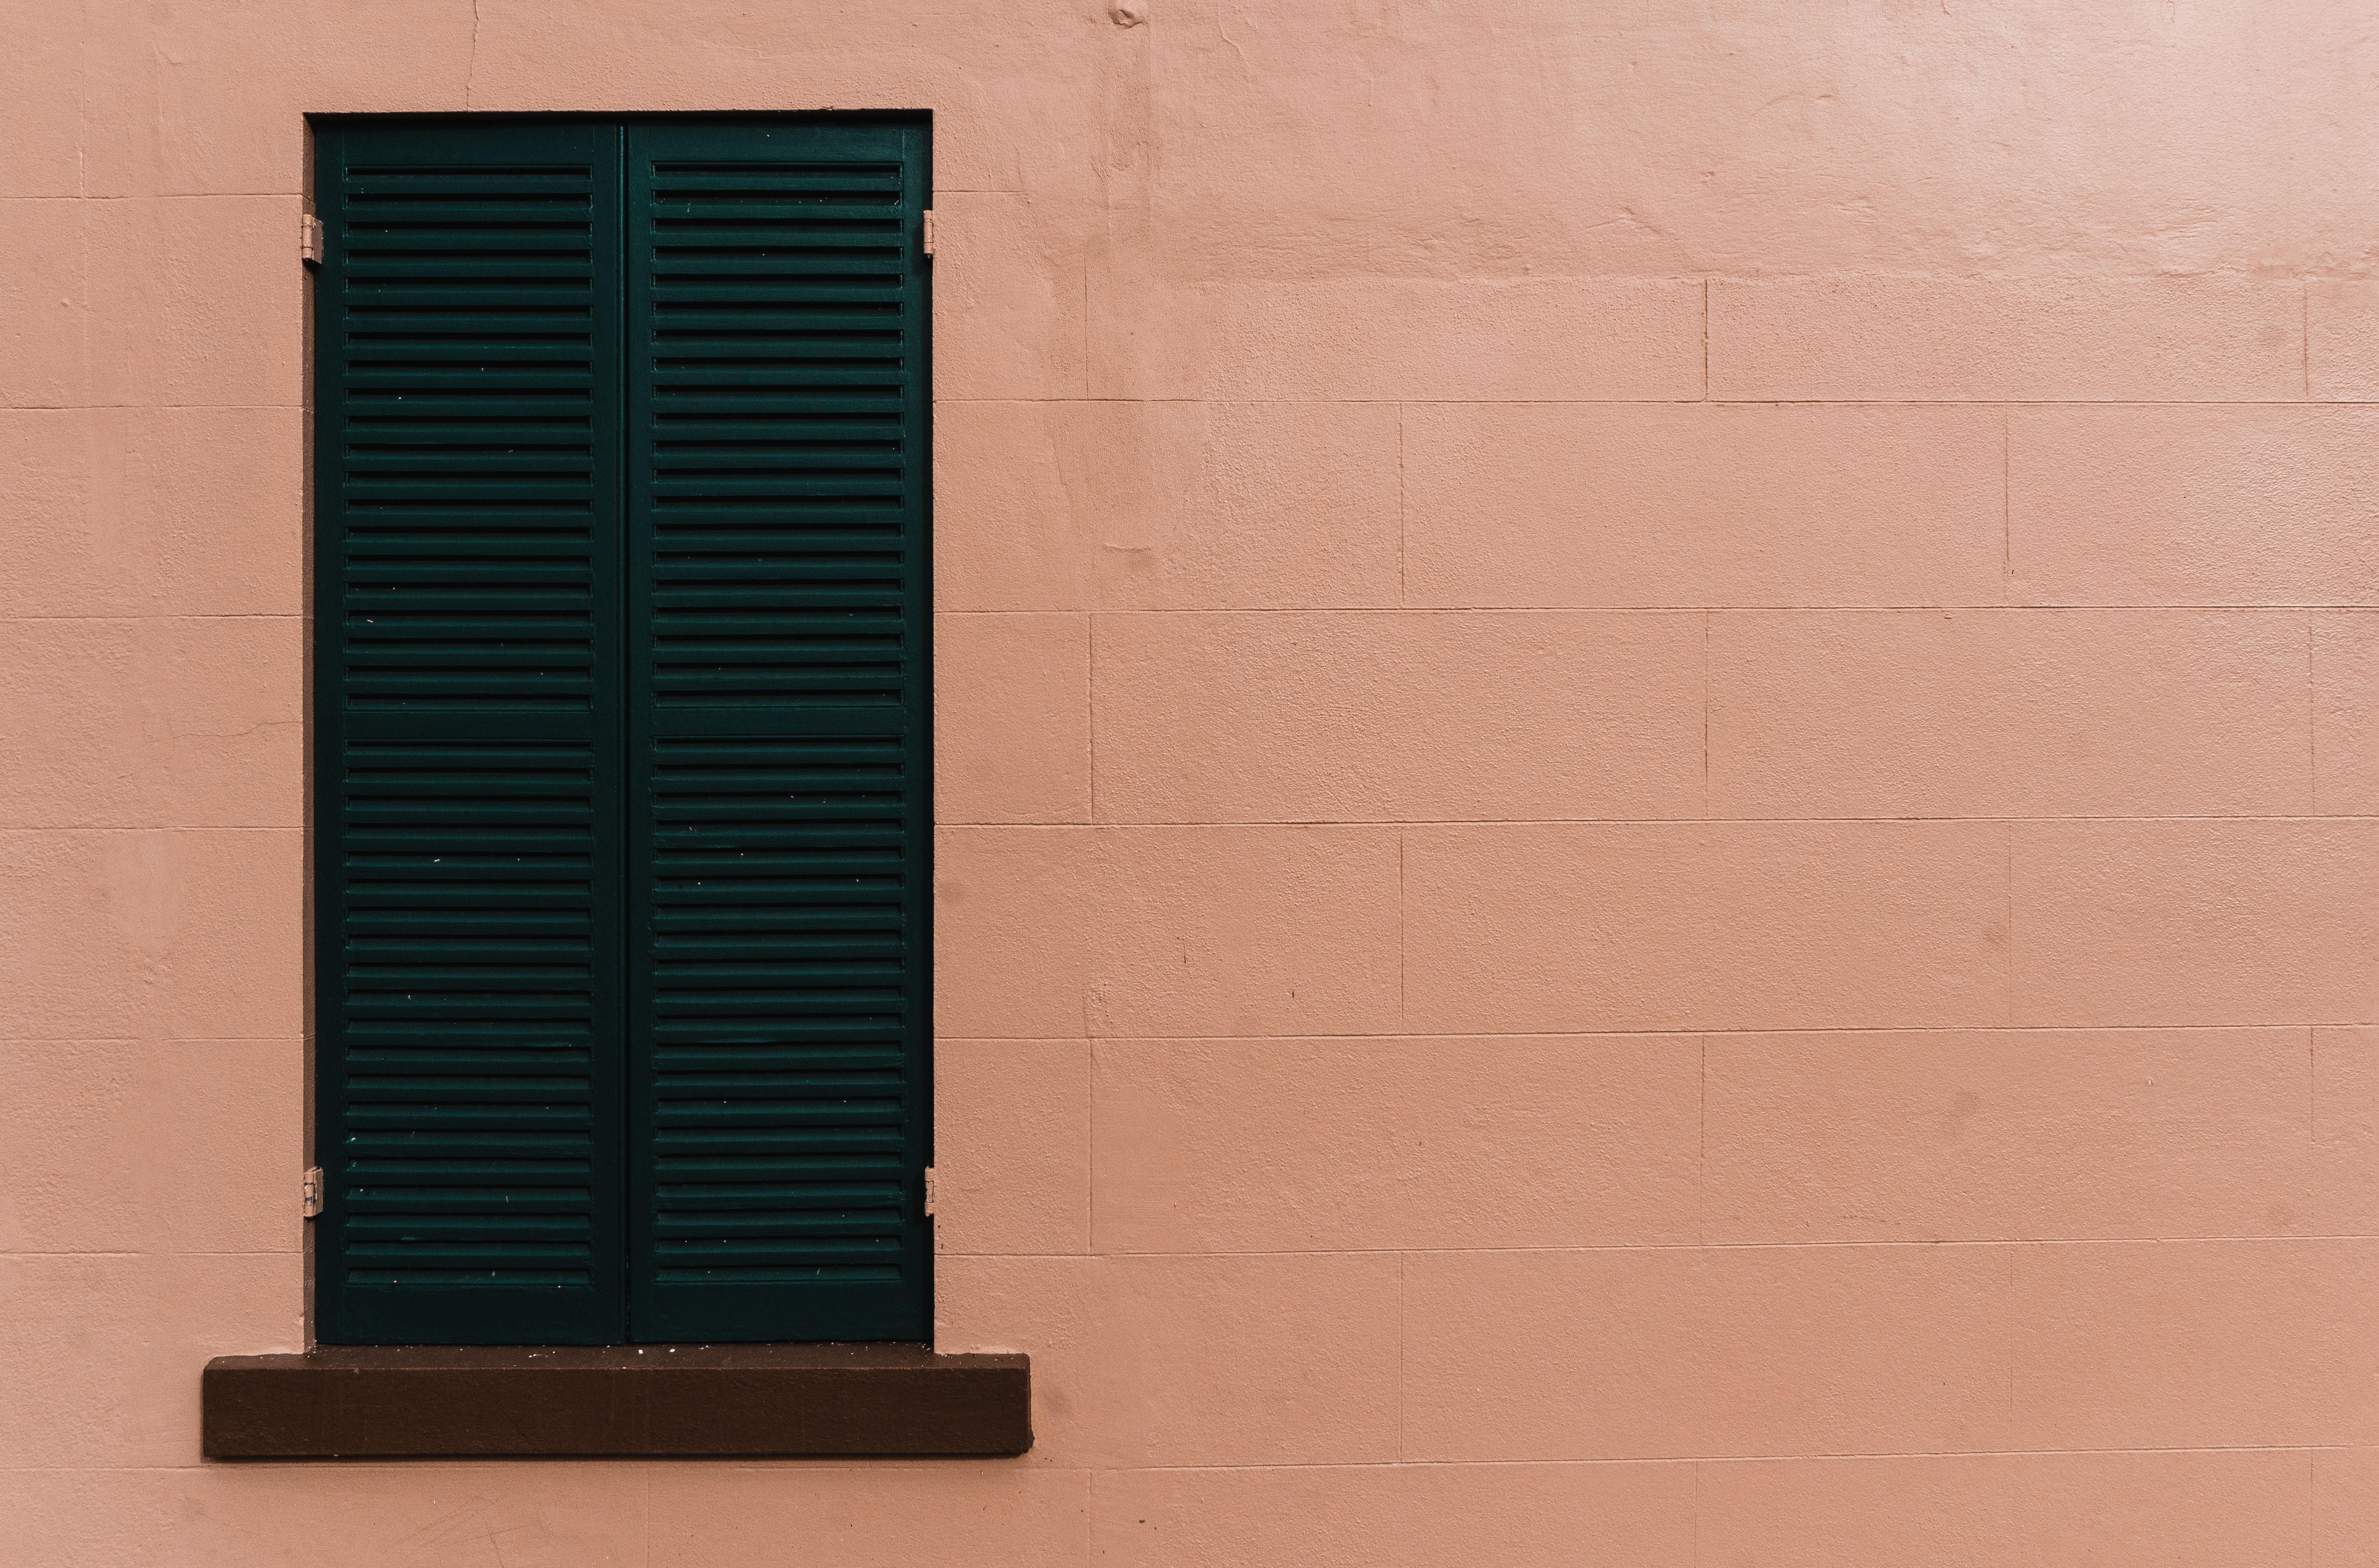 brown wooden building with green louvered window